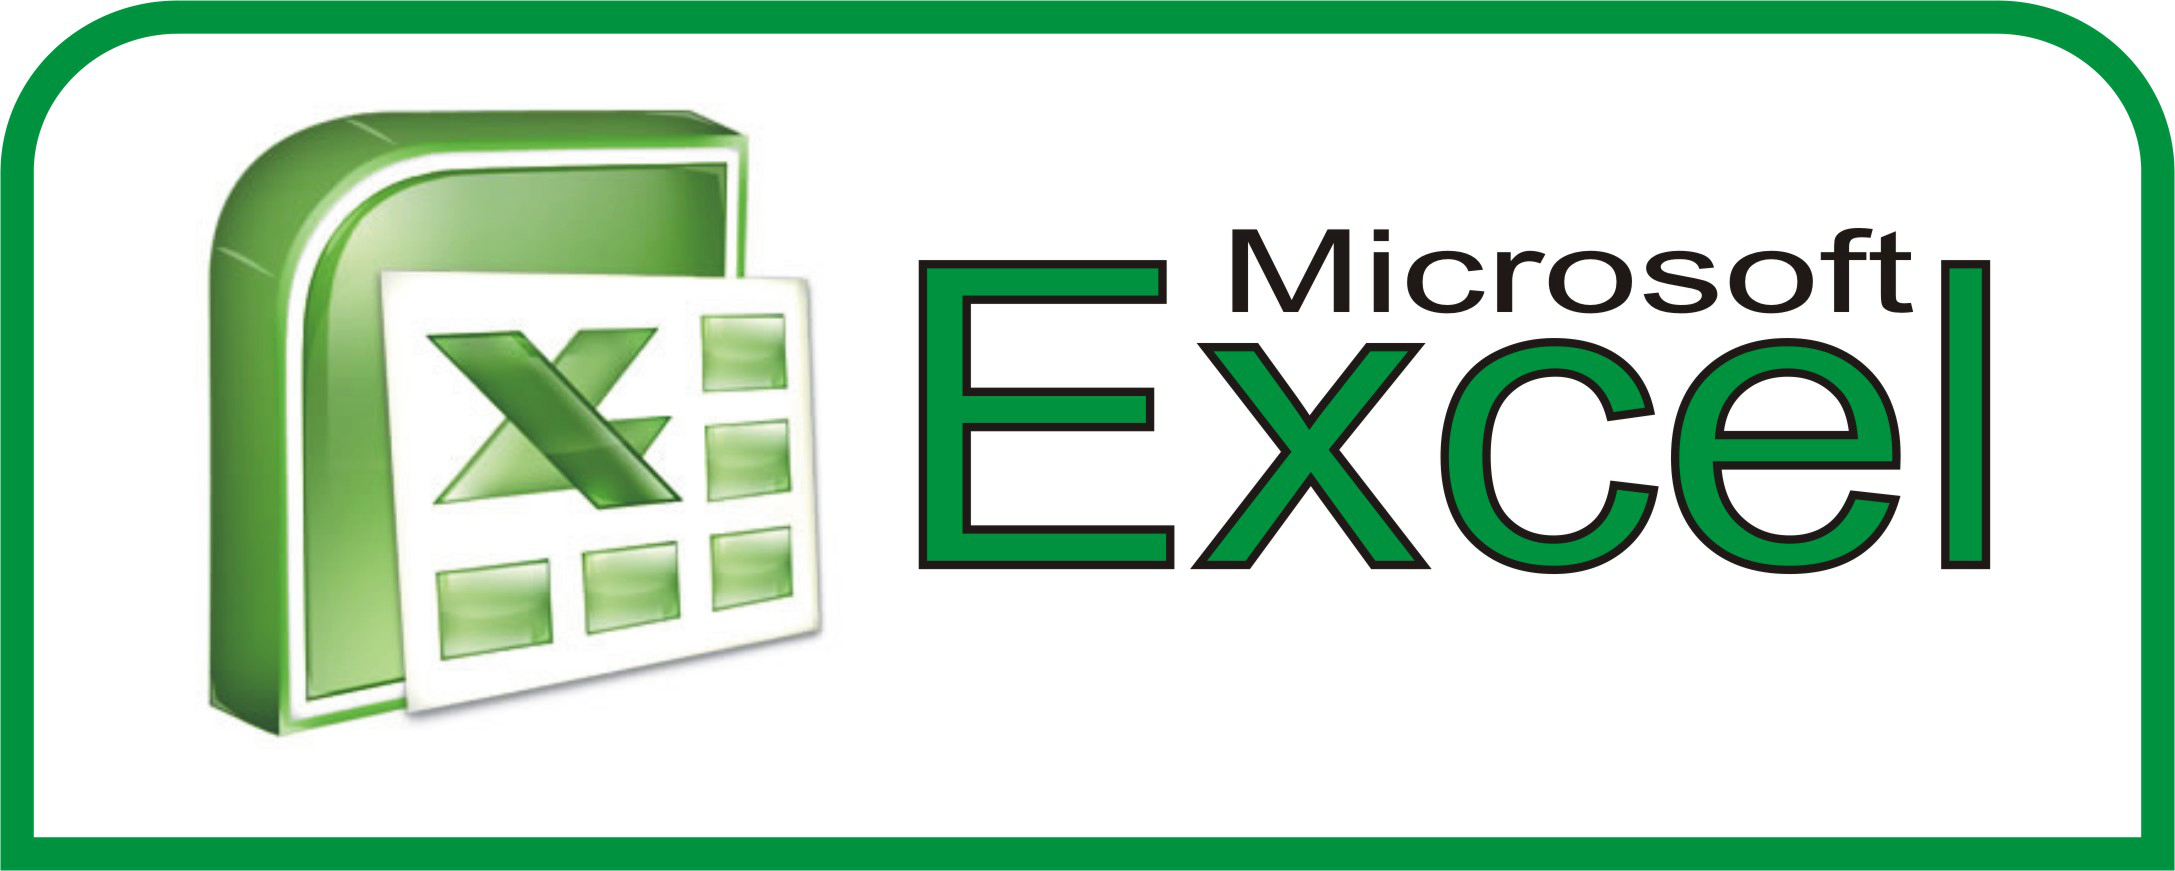 Ediblewildsus  Sweet  Excel Shortcuts You Probably Didnt Know About  Techdissected With Luxury Rank If Excel Besides Excel Redo Furthermore Excel Delete Empty Cells With Easy On The Eye How To Make A Spreadsheet On Excel Also Excel Month Formula In Addition Excel Formula Between Two Numbers And  Y Axis Excel As Well As Intermediate Excel Additionally How To Change Header In Excel From Techdissectedcom With Ediblewildsus  Luxury  Excel Shortcuts You Probably Didnt Know About  Techdissected With Easy On The Eye Rank If Excel Besides Excel Redo Furthermore Excel Delete Empty Cells And Sweet How To Make A Spreadsheet On Excel Also Excel Month Formula In Addition Excel Formula Between Two Numbers From Techdissectedcom